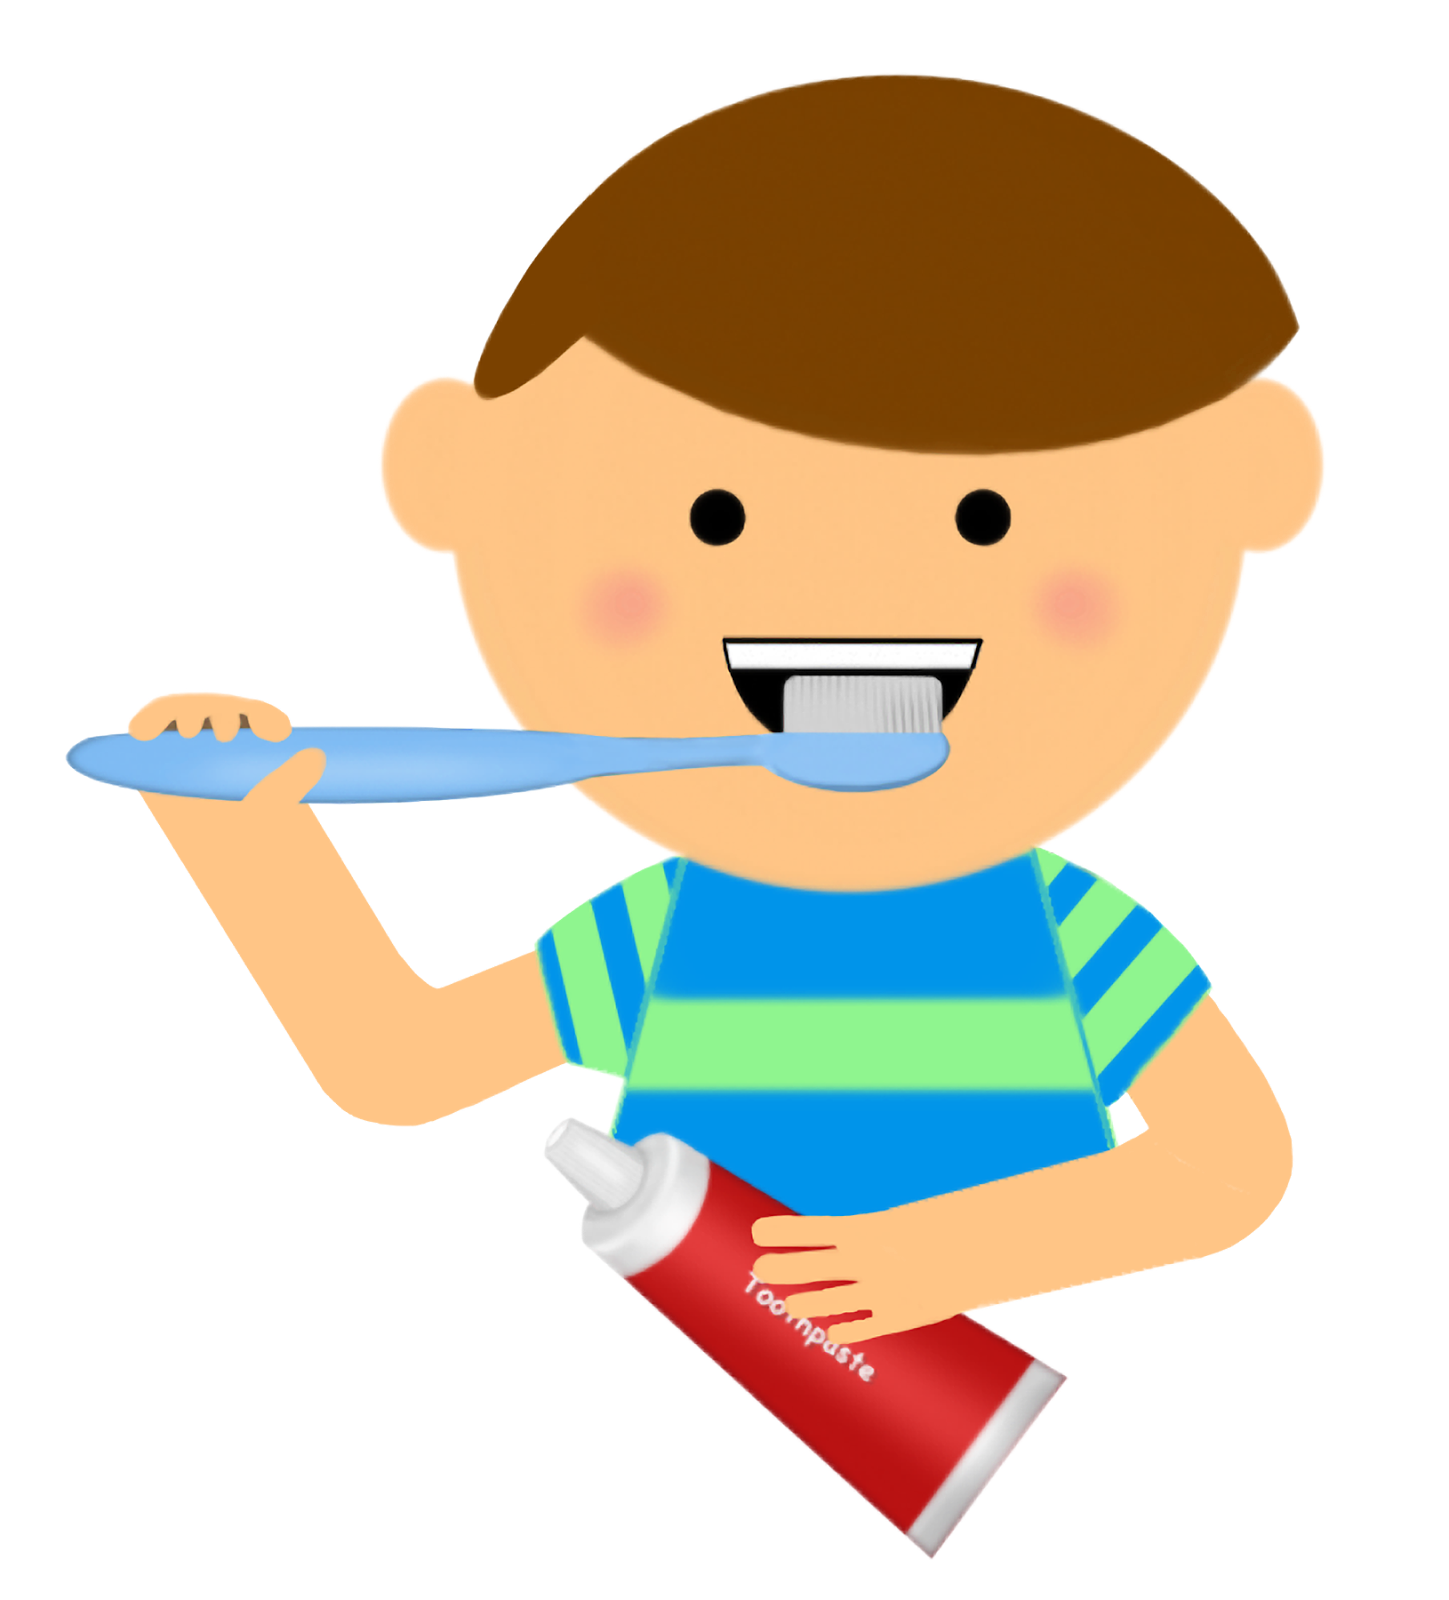 brushing teeth pictures cliparts co dentist theme pinterest rh pinterest com brush your teeth clipart child brushing teeth clipart